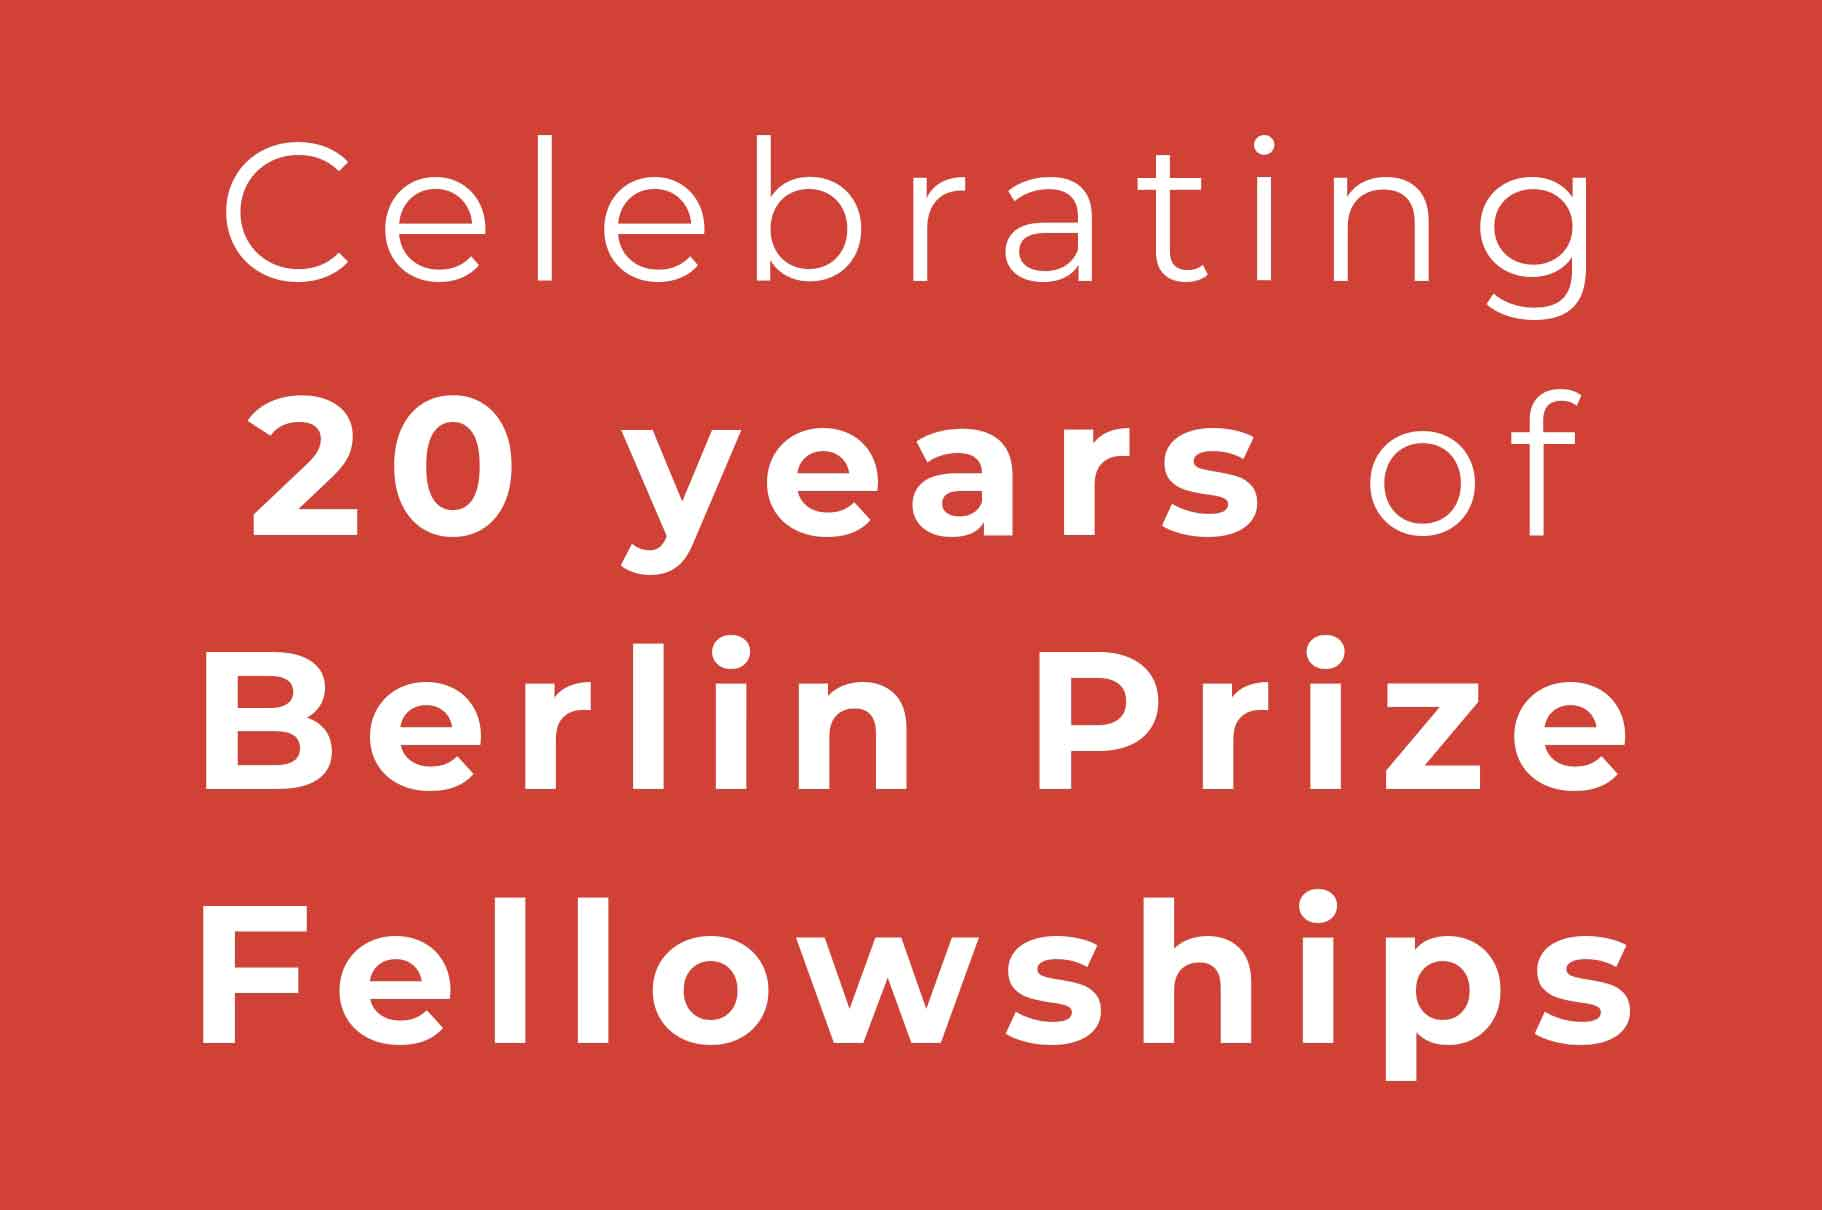 Celebrating Twenty Years Of Fellowships